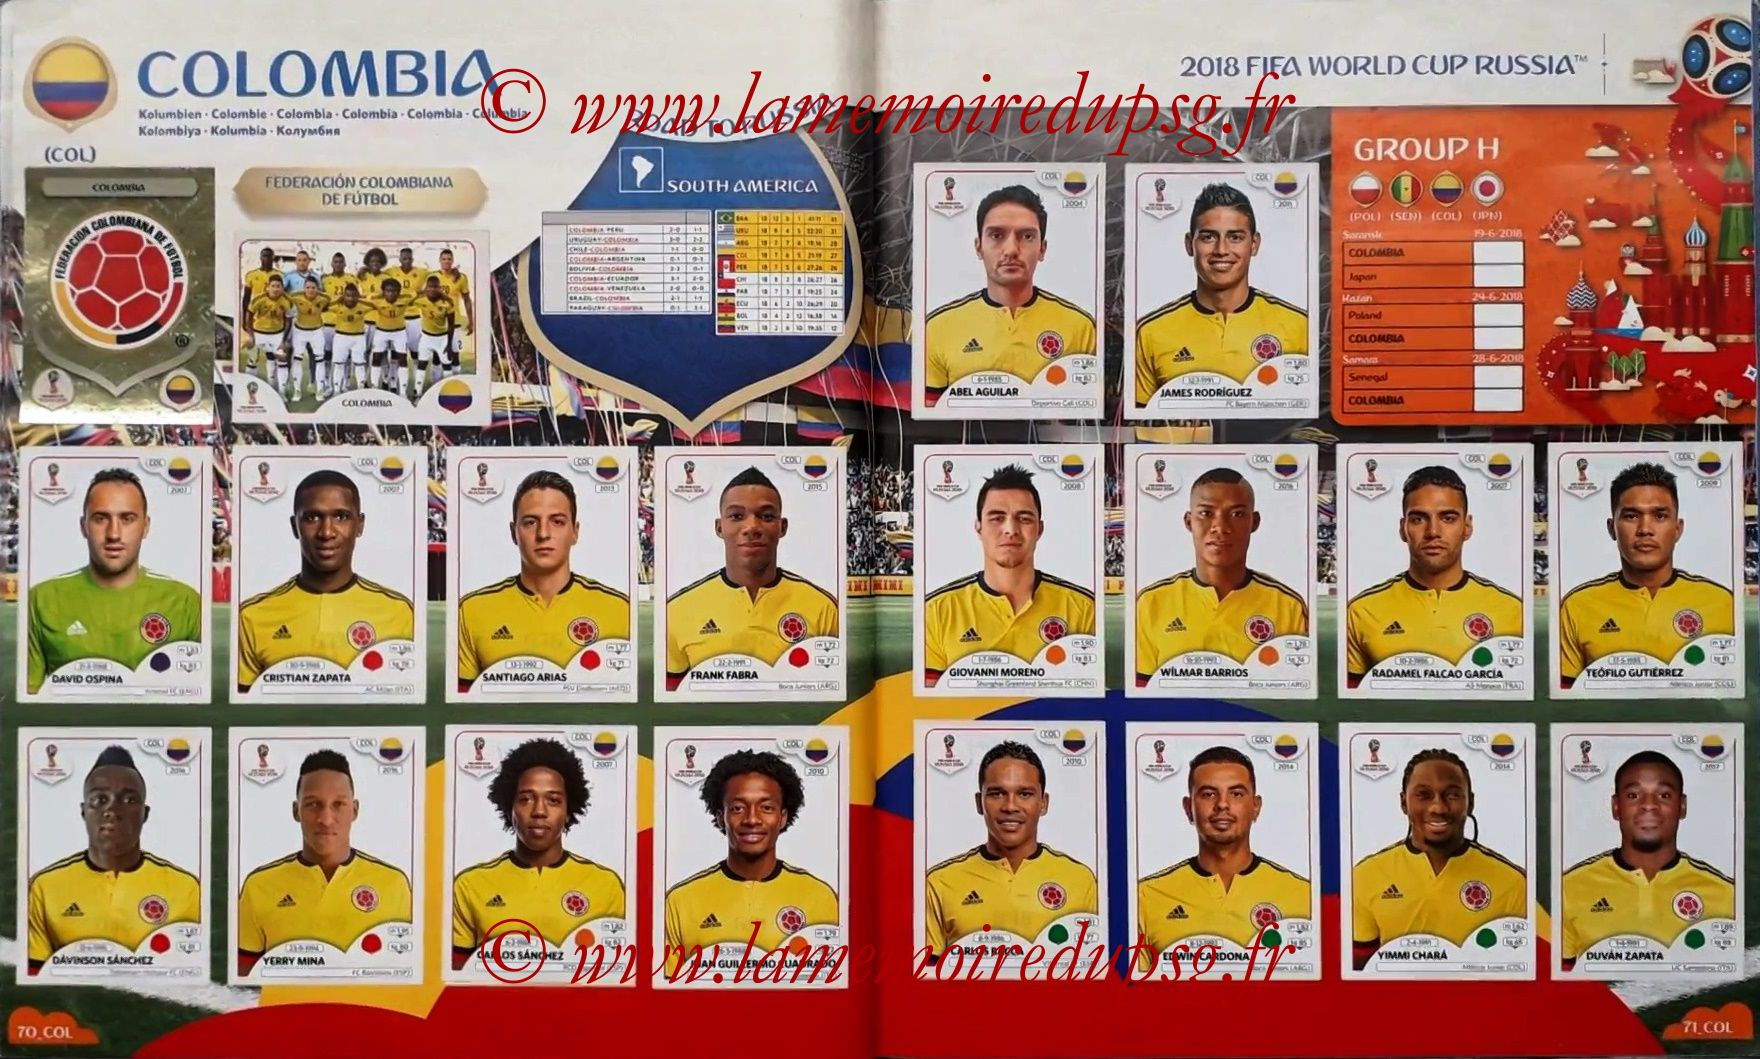 2018 - Panini FIFA World Cup Russia Stickers - Pages 70 et 71 - Colombie